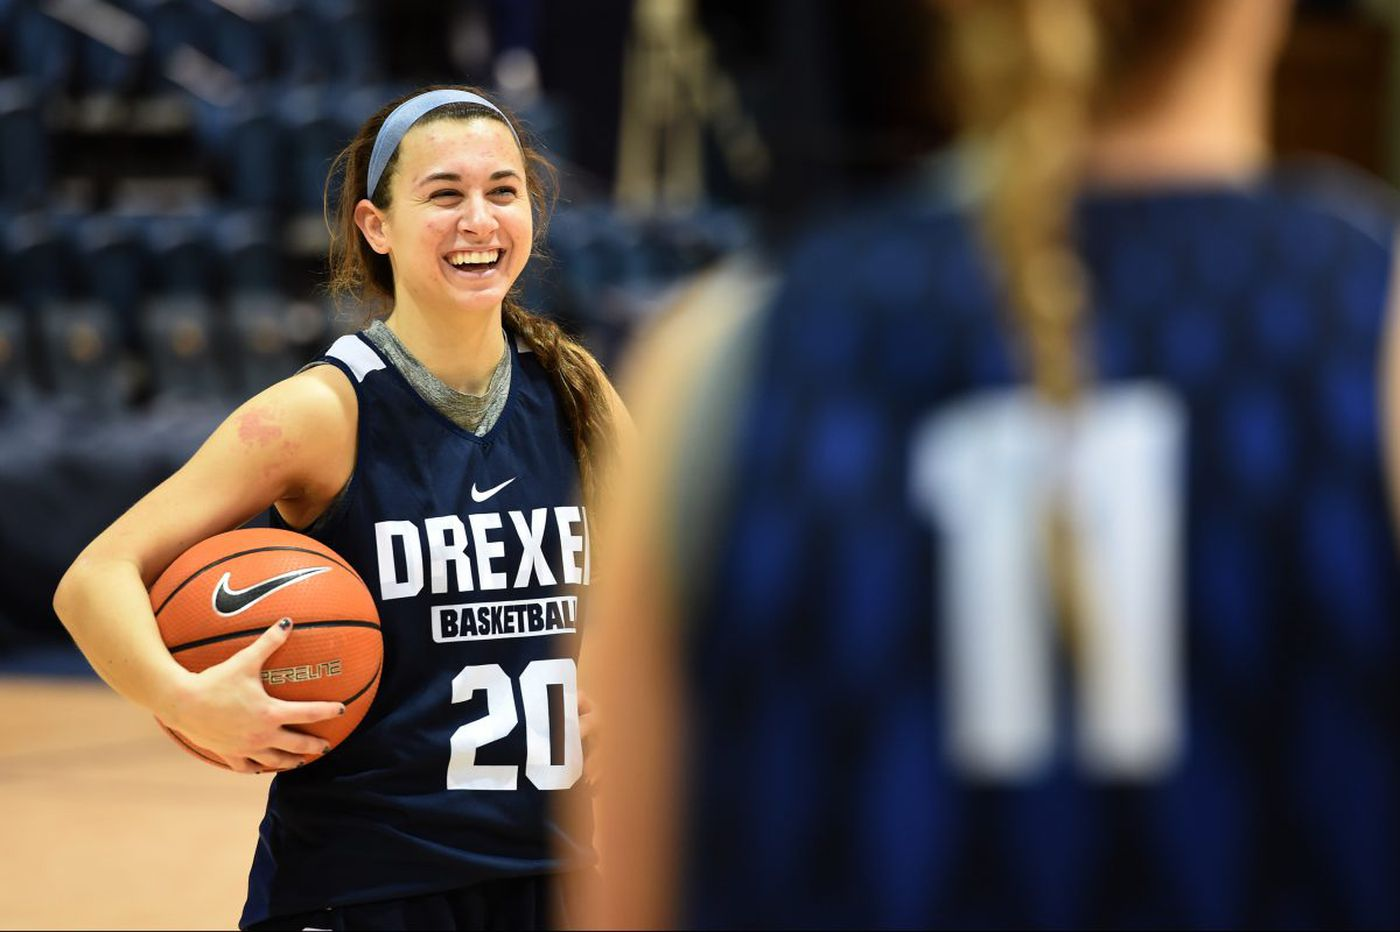 Drexel basketball player Hannah Nihill's greatest assist went to her sister